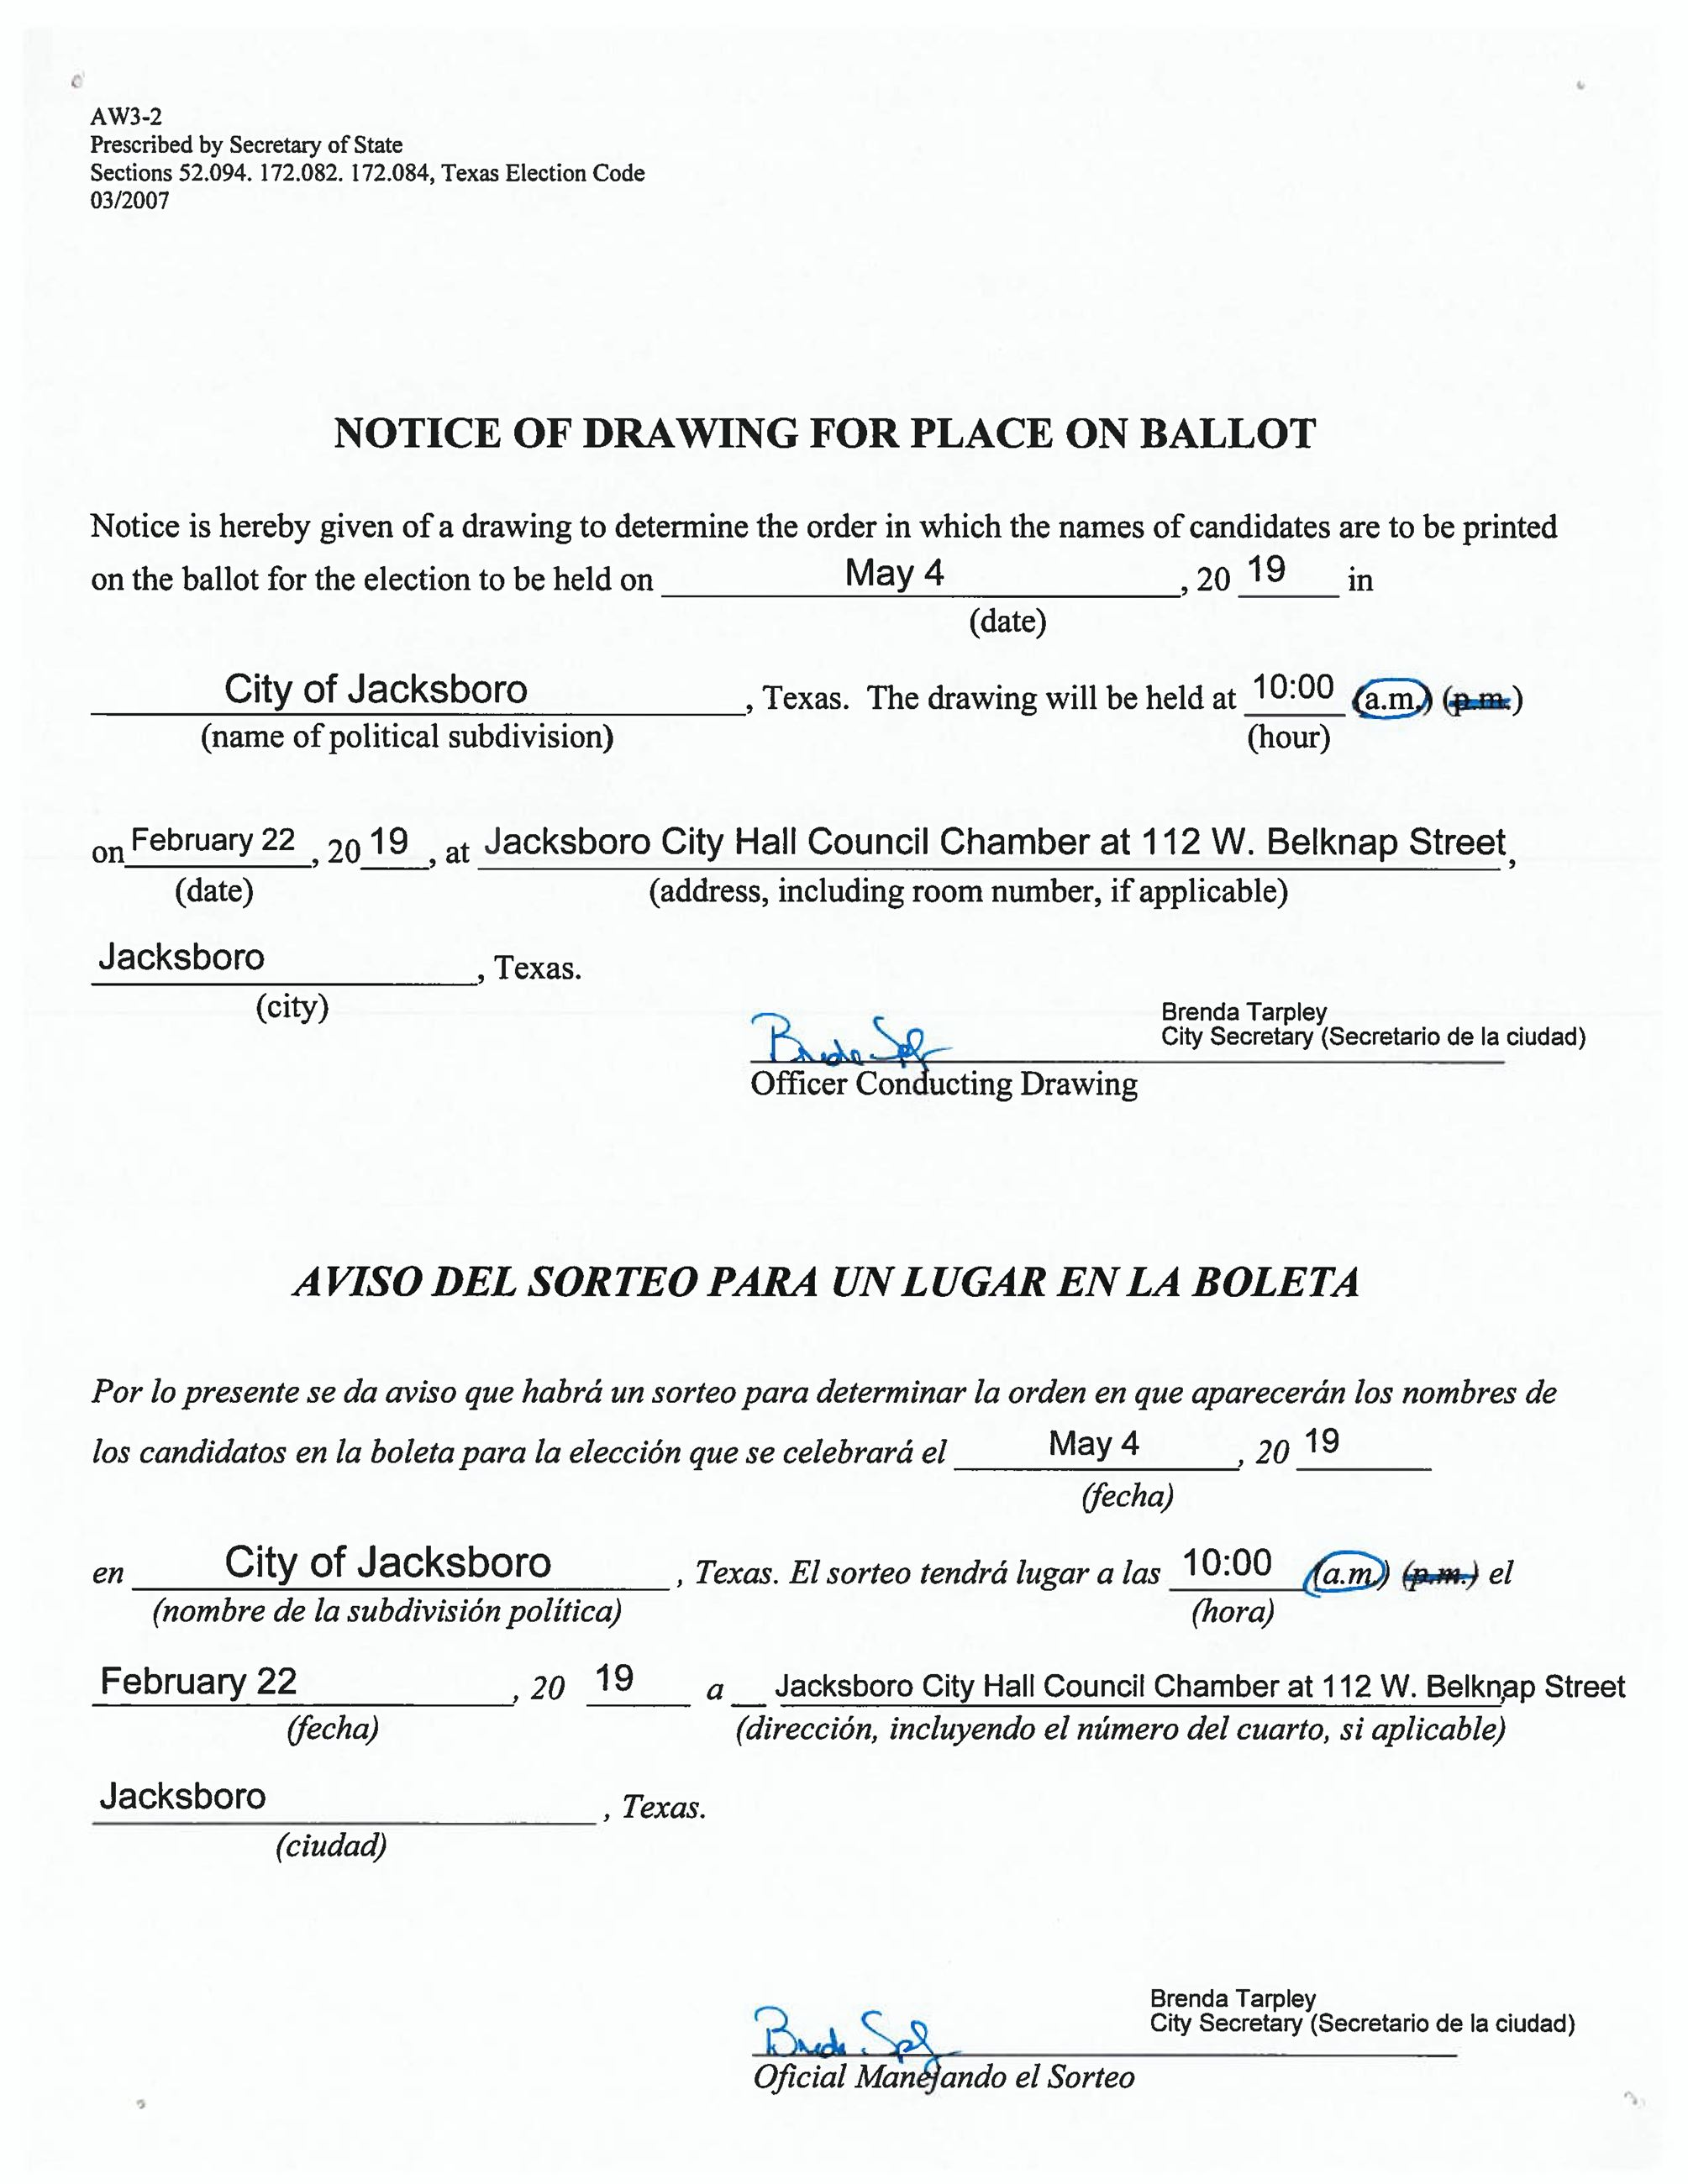 Notice For Drawing For Place On 5-4-2019 Ballot